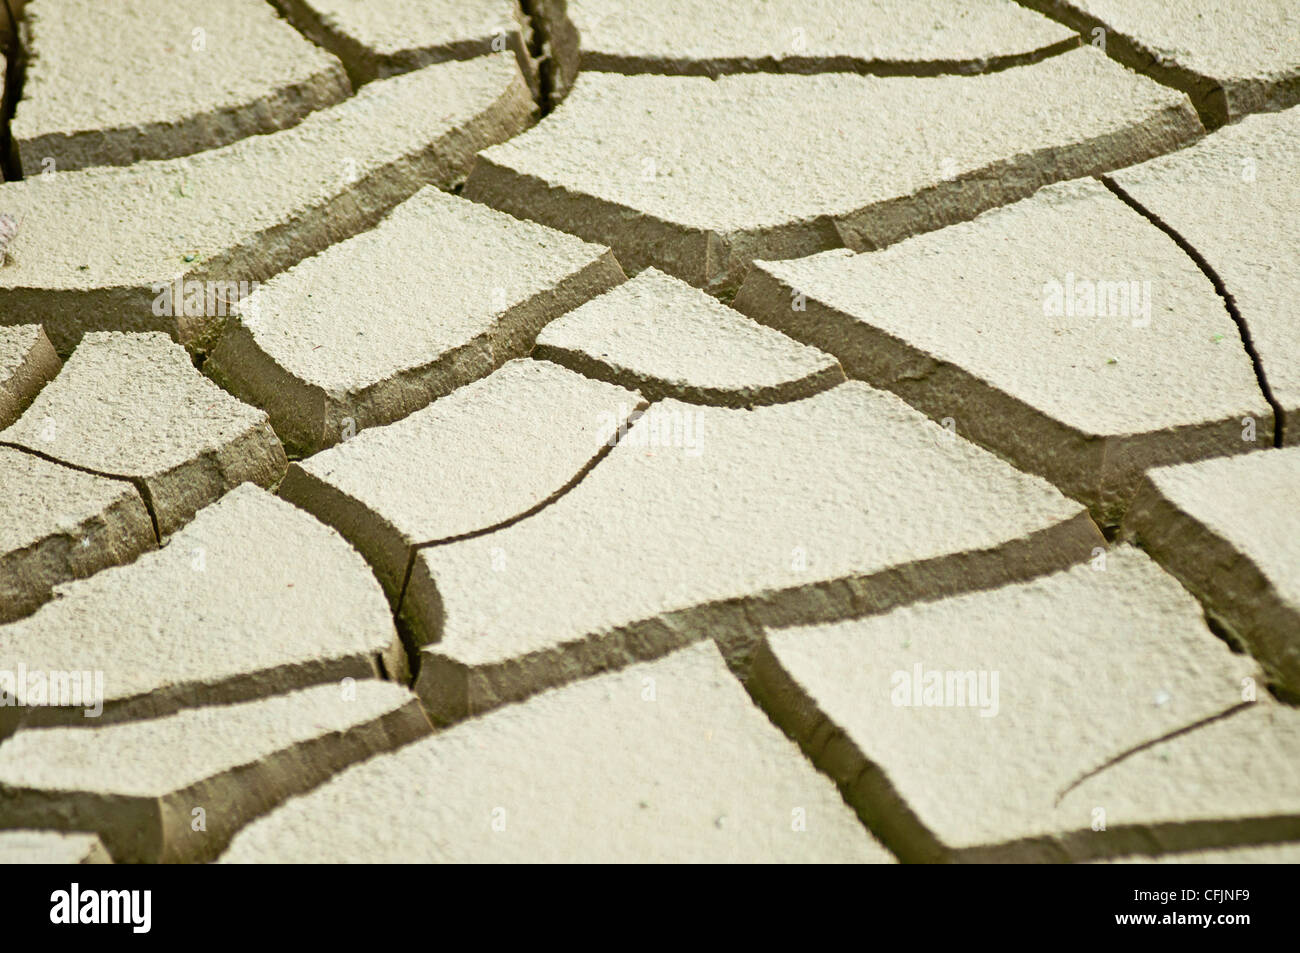 Dry heavy cracked Earth as a result of drought, parched mud, - Stock Image